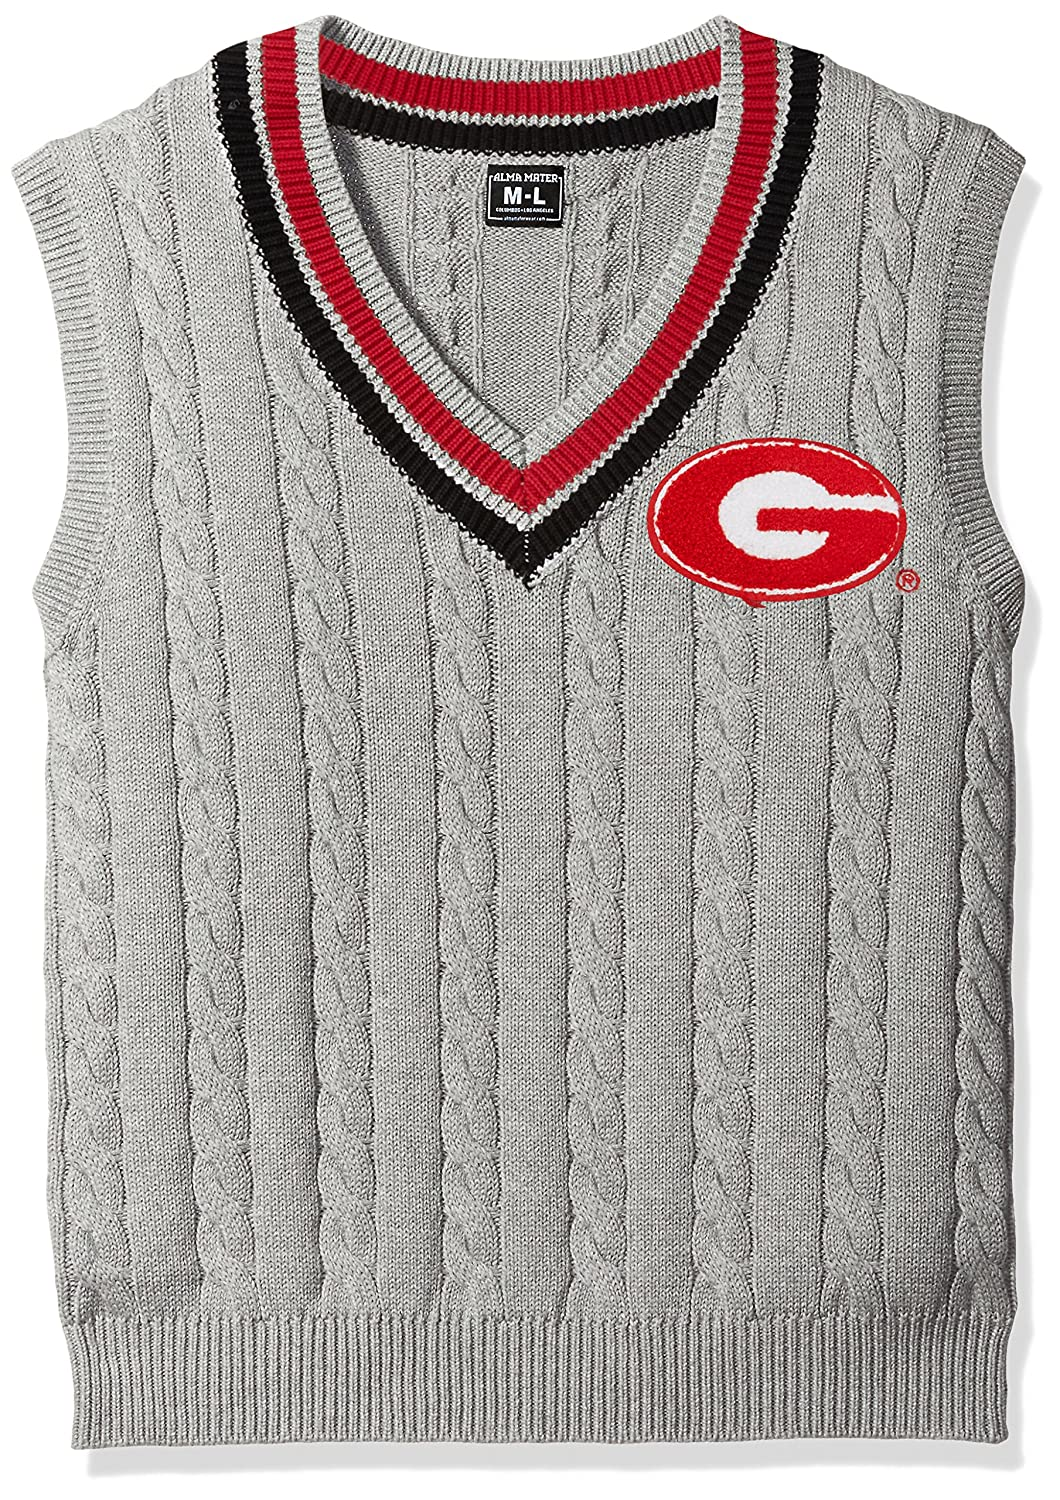 Alma Mater NCAA Mens Cable Knit Vest